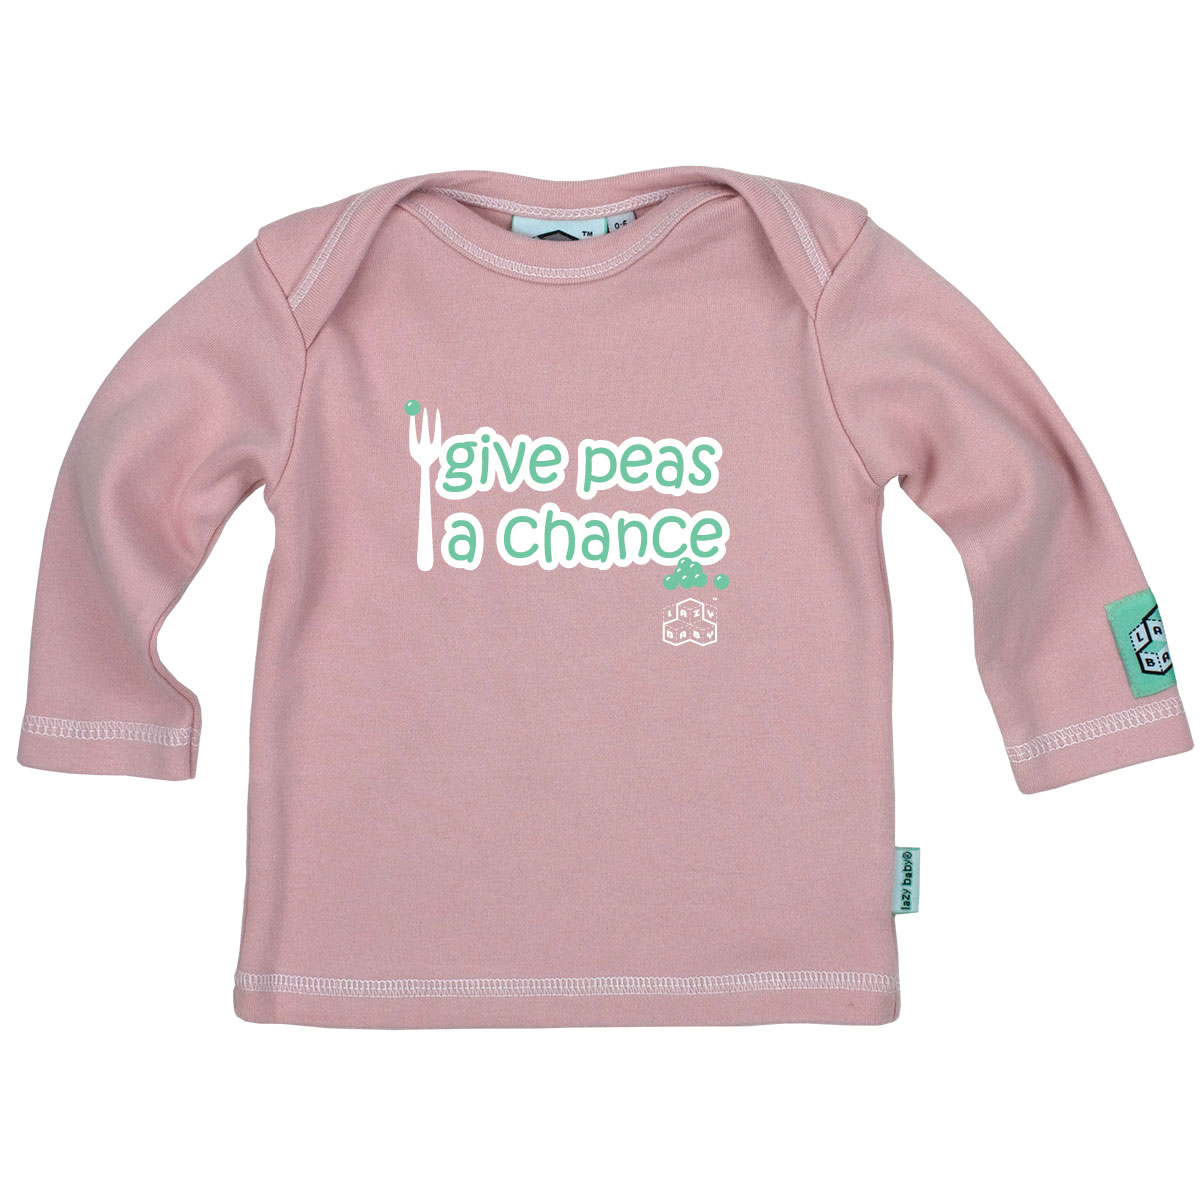 Lazy Baby Give Peas a Chance - Light Pink<br><span style='color: rgb(230, 0, 0);'>CLEARANCE</span>